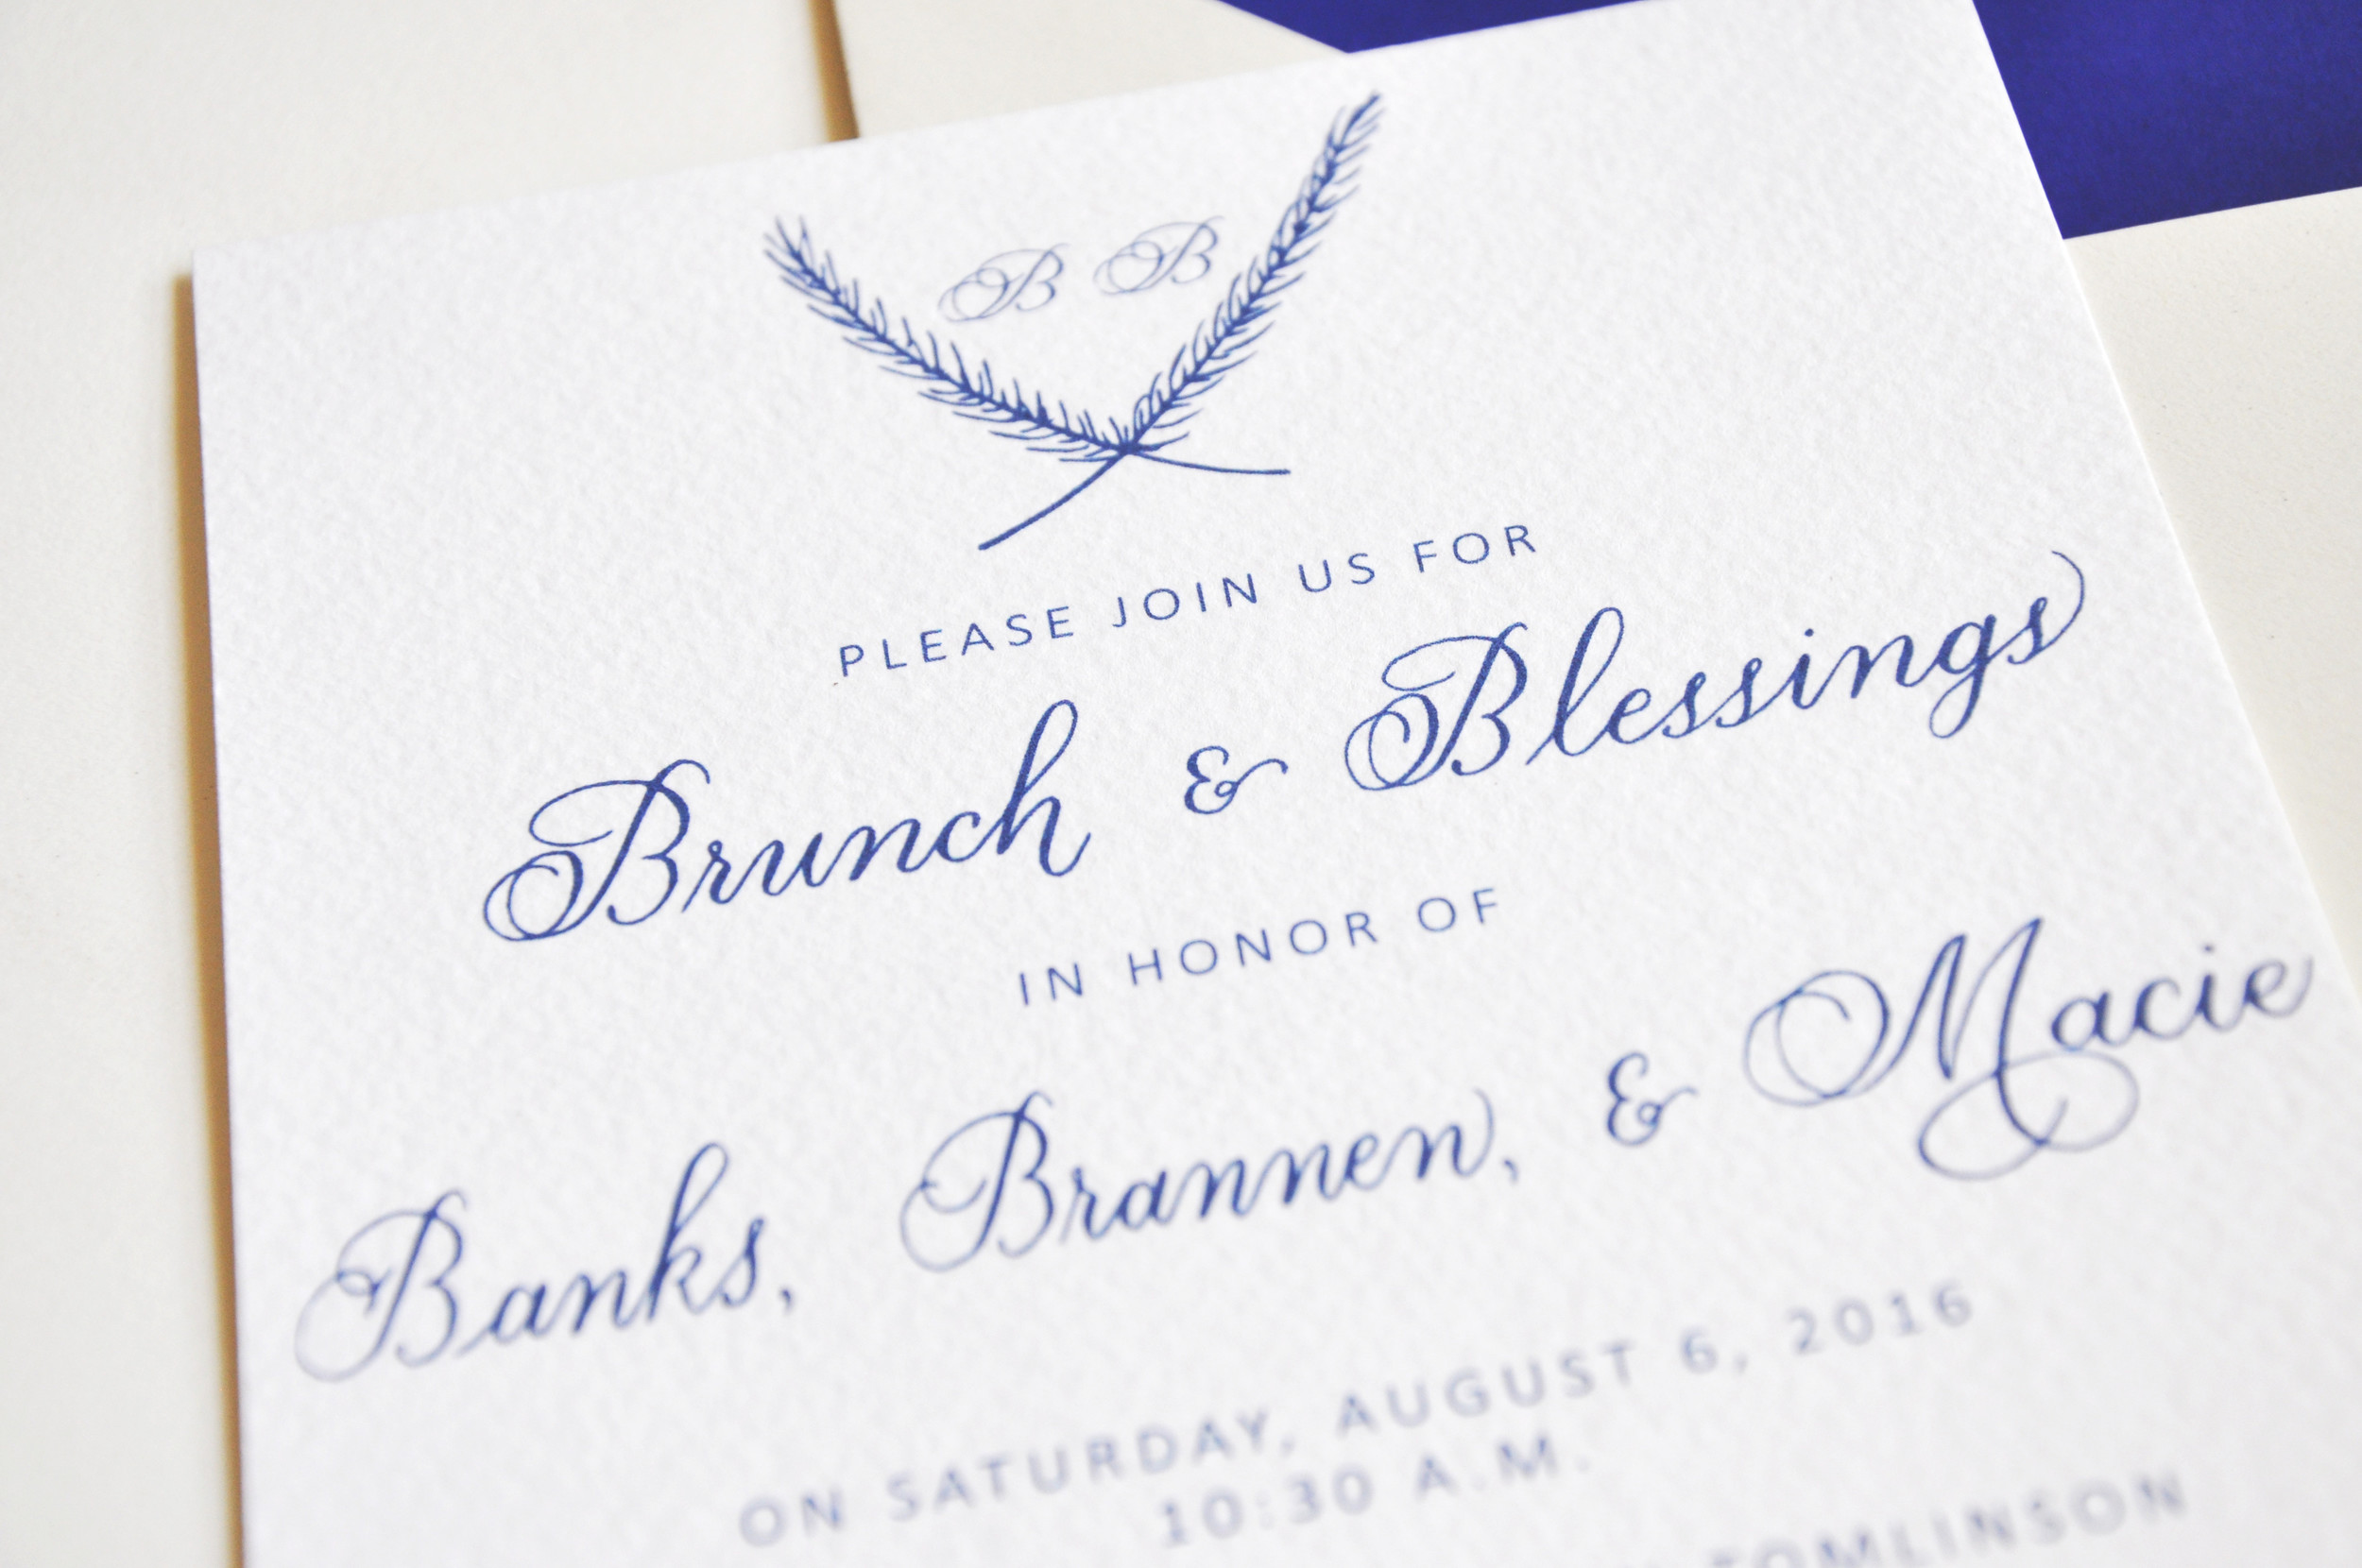 For this invitation, I used pointed-pen calligraphy to create the handmade elements of the invitation.  First, I designed a classic monogram that featured the initials of the twin boys' first names.  I enclosed the letters in a simple rustic wreath.  Then, I drew the rest of the handmade elements in traditional copperplate calligraphy.